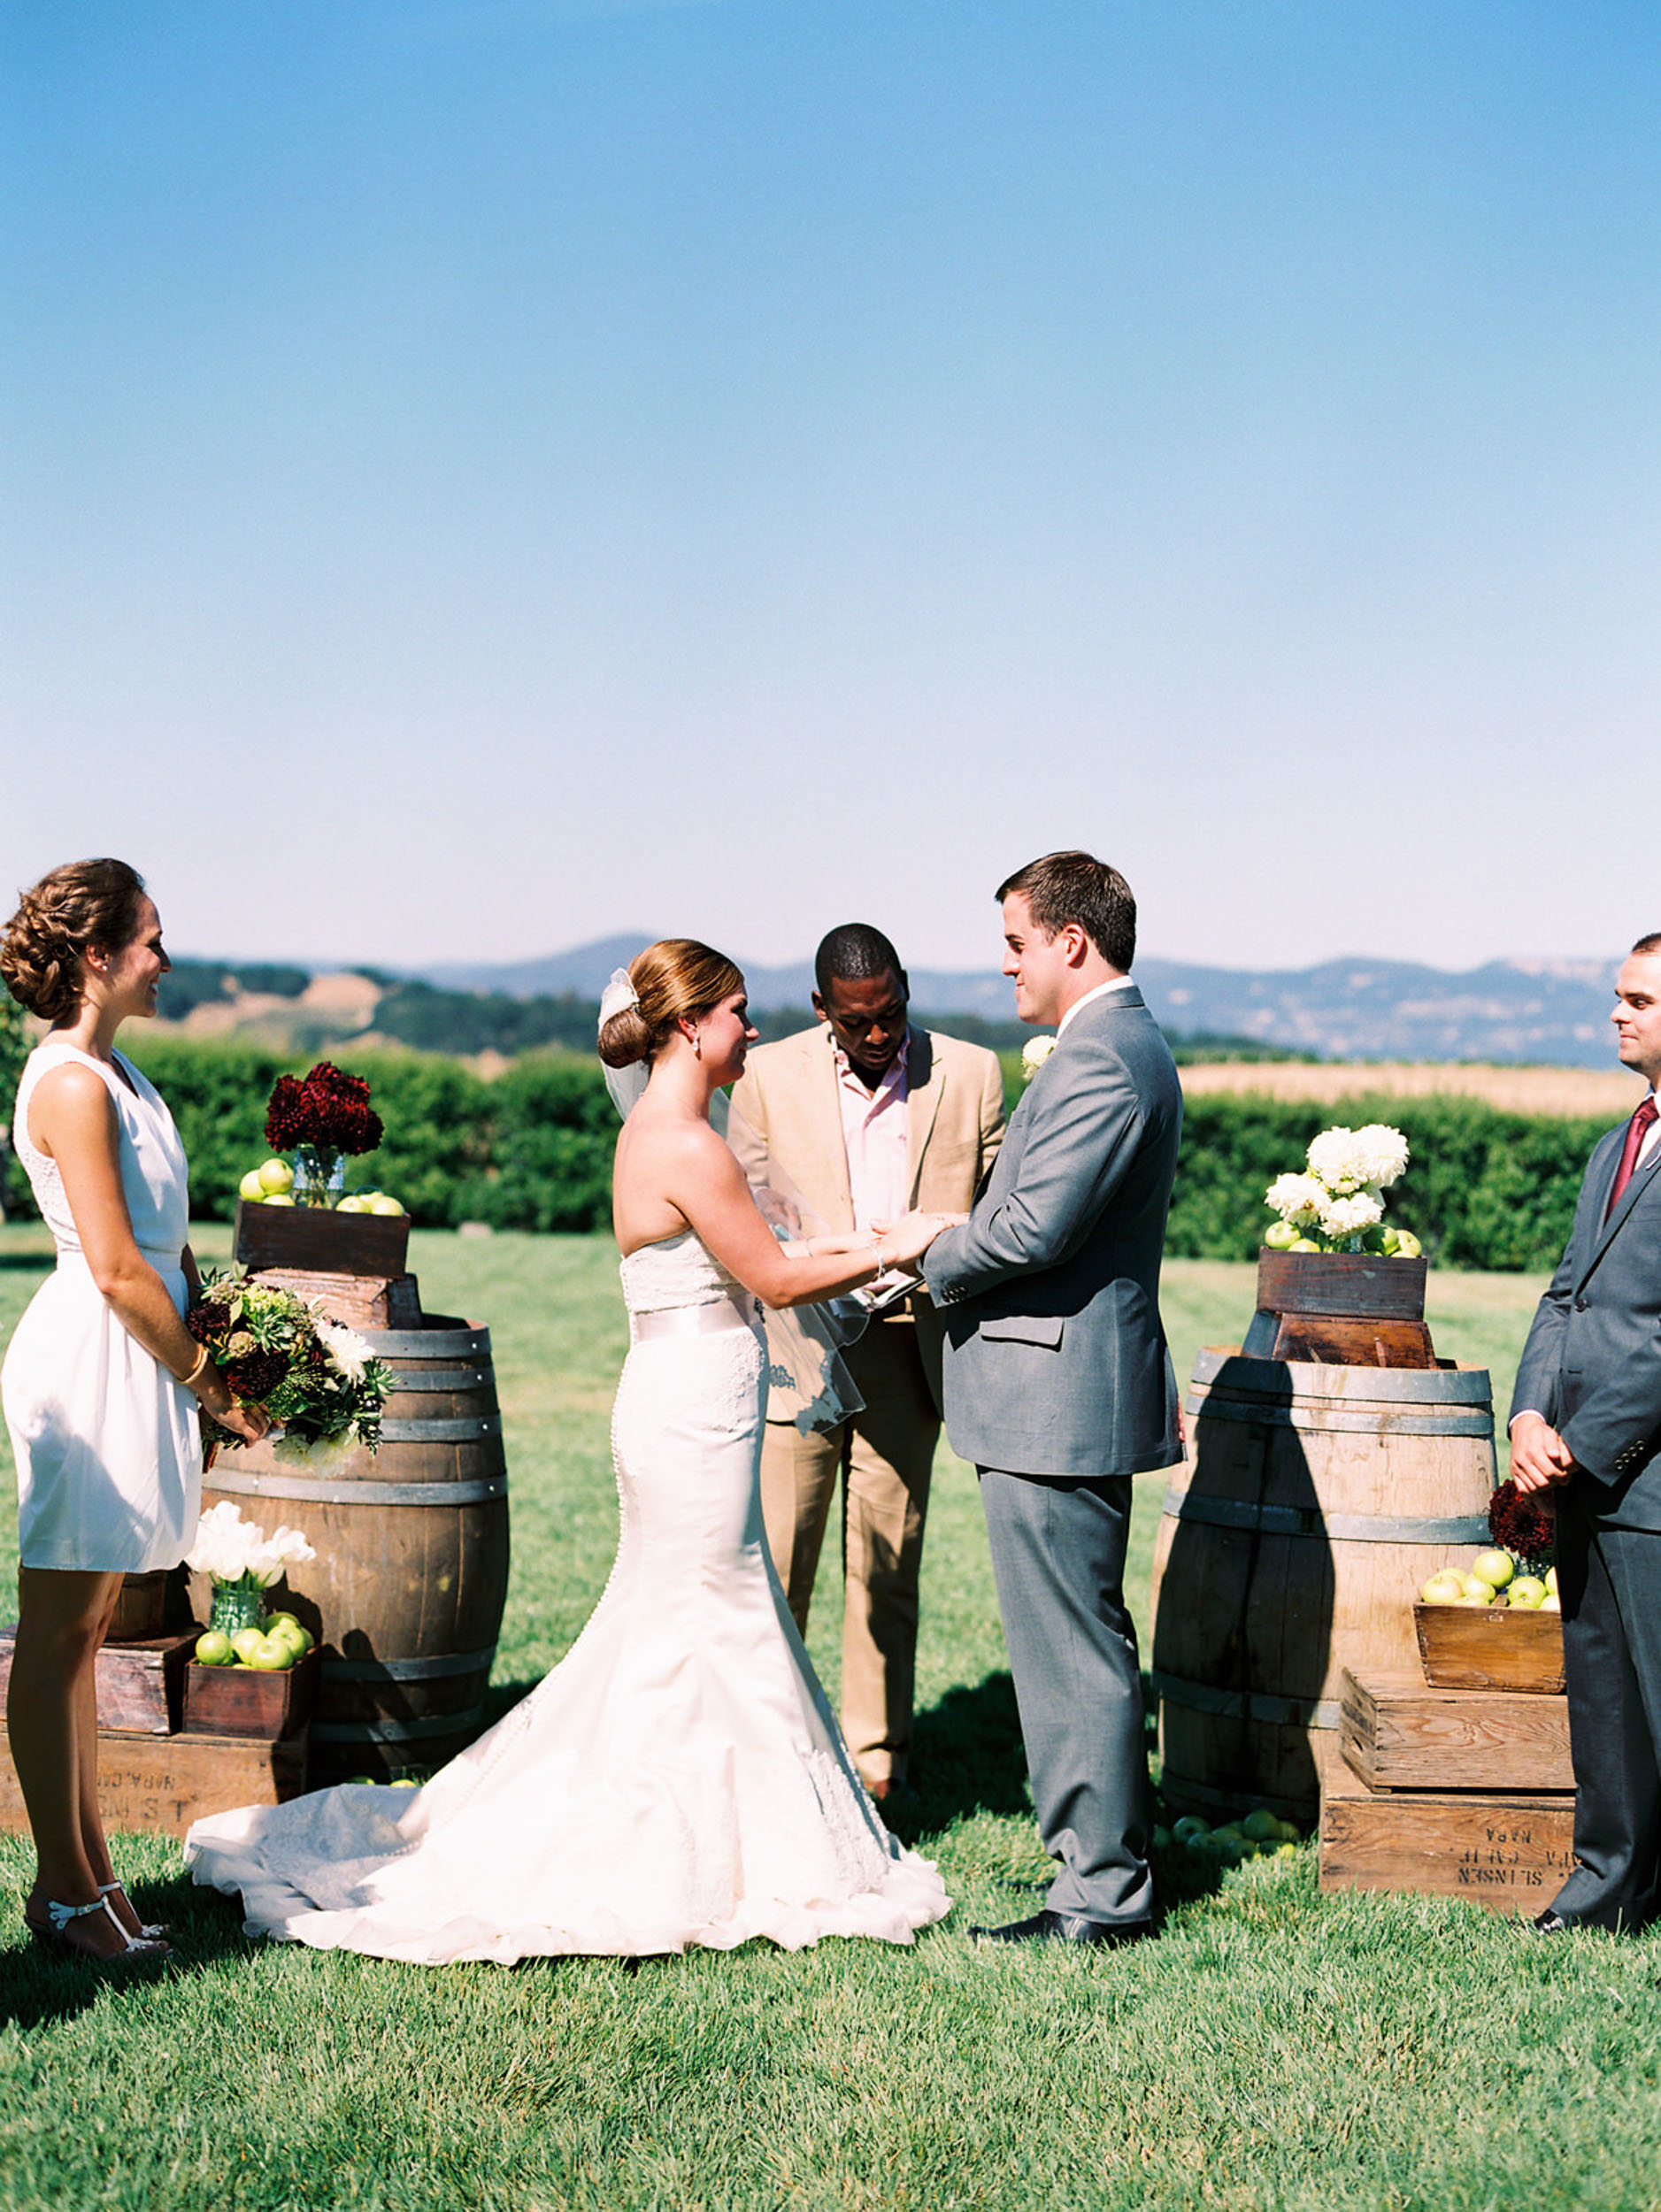 Carneros Resort Wedding Photographer 0052 - Carneros Resort